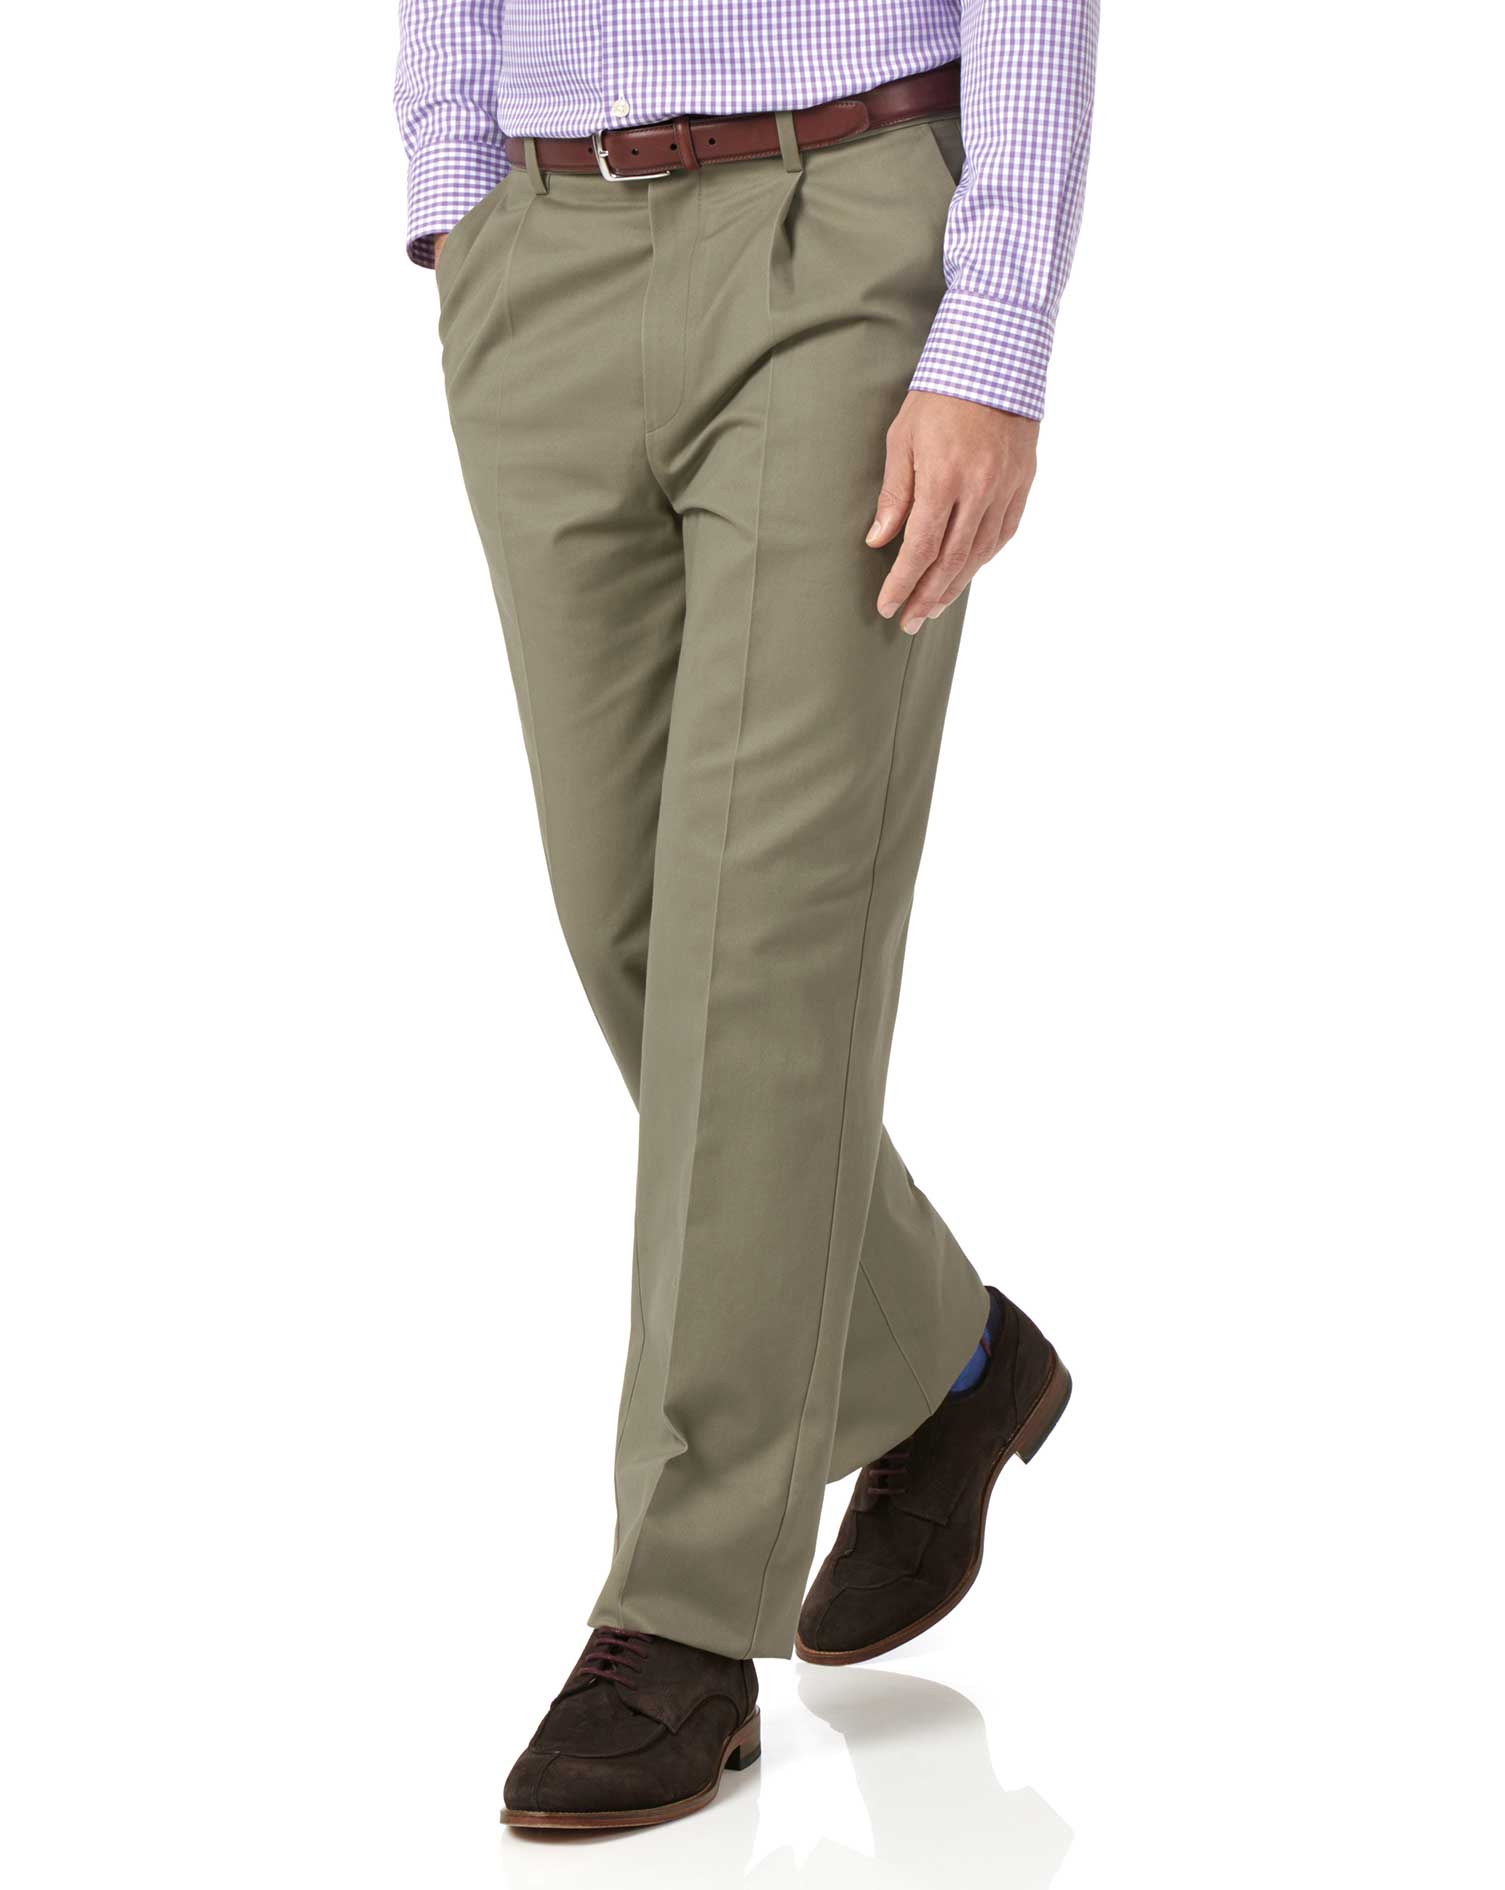 Olive Classic Fit Single Pleat Non-Iron Cotton Chino Trousers Size W34 L34 by Charles Tyrwhitt